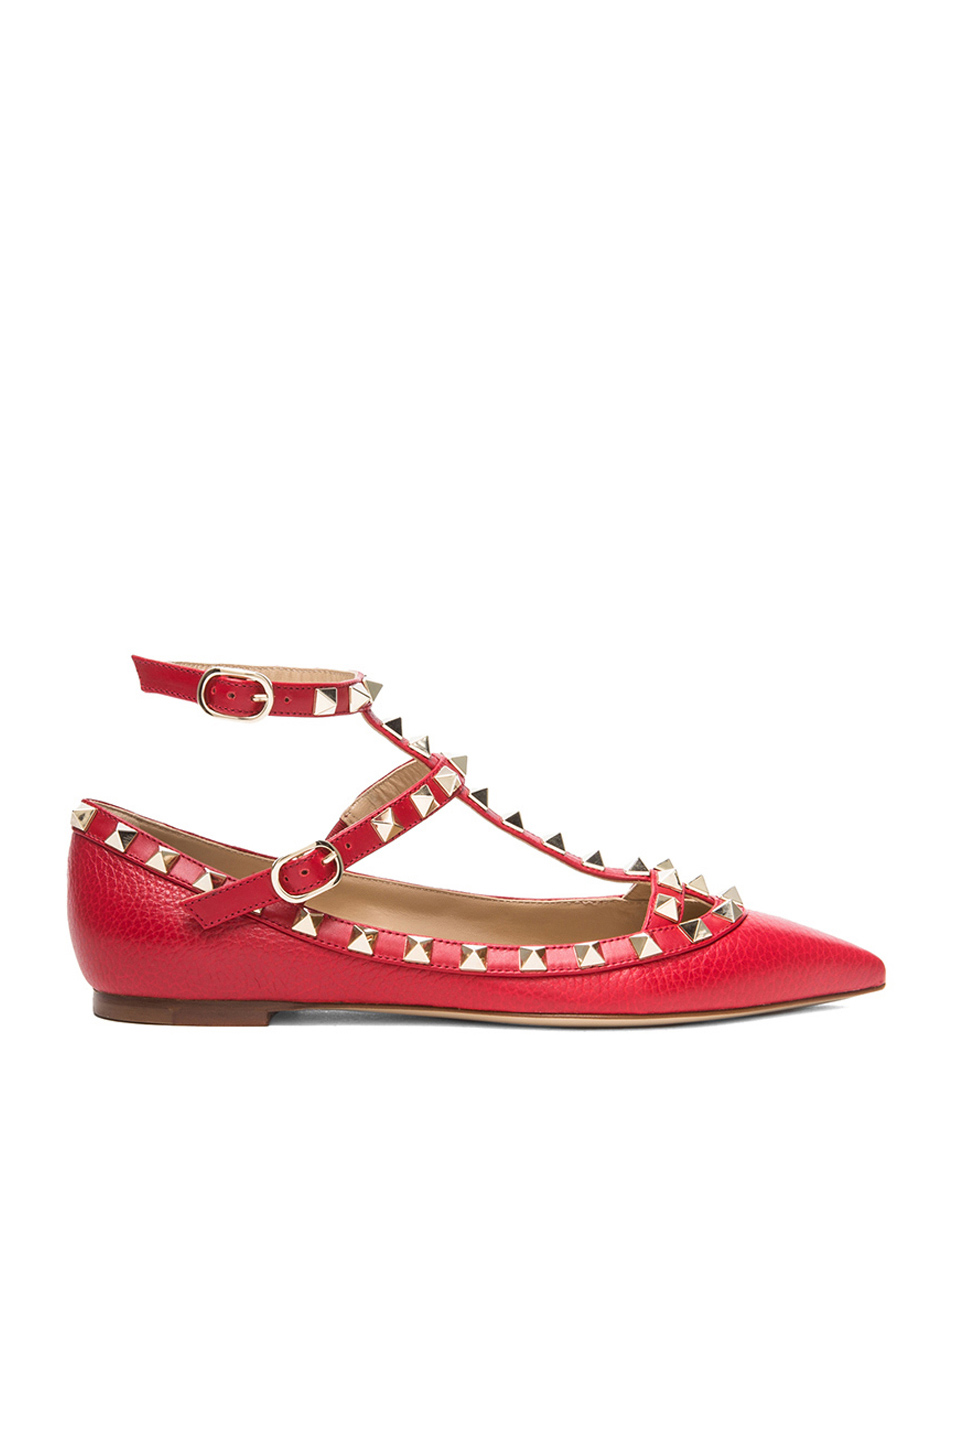 Valentino The Rockstud Embellished Metallic Leather Flats In Rosso